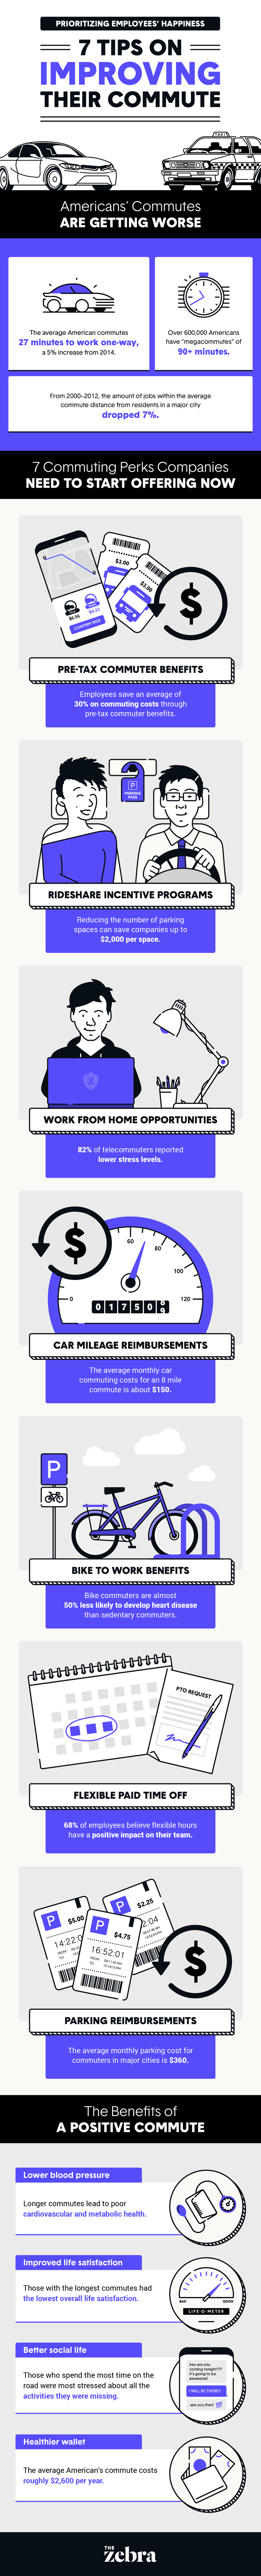 commuter perks companies should offer infographic